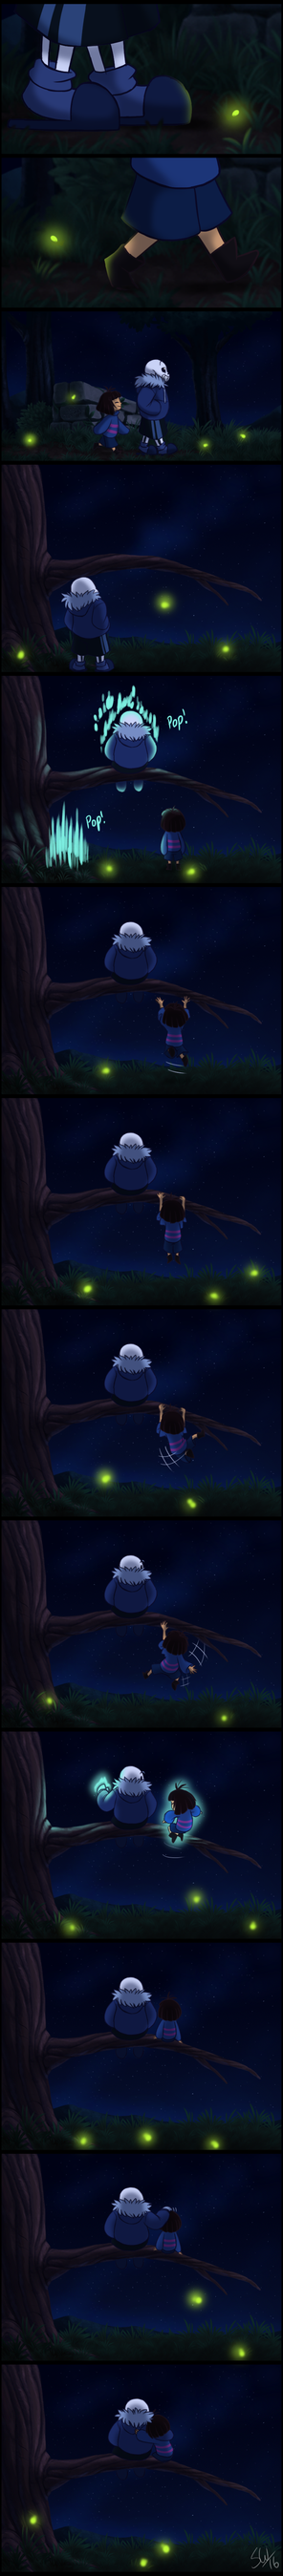 Undertale - Stargazing with Dunkle Sans by TC-96